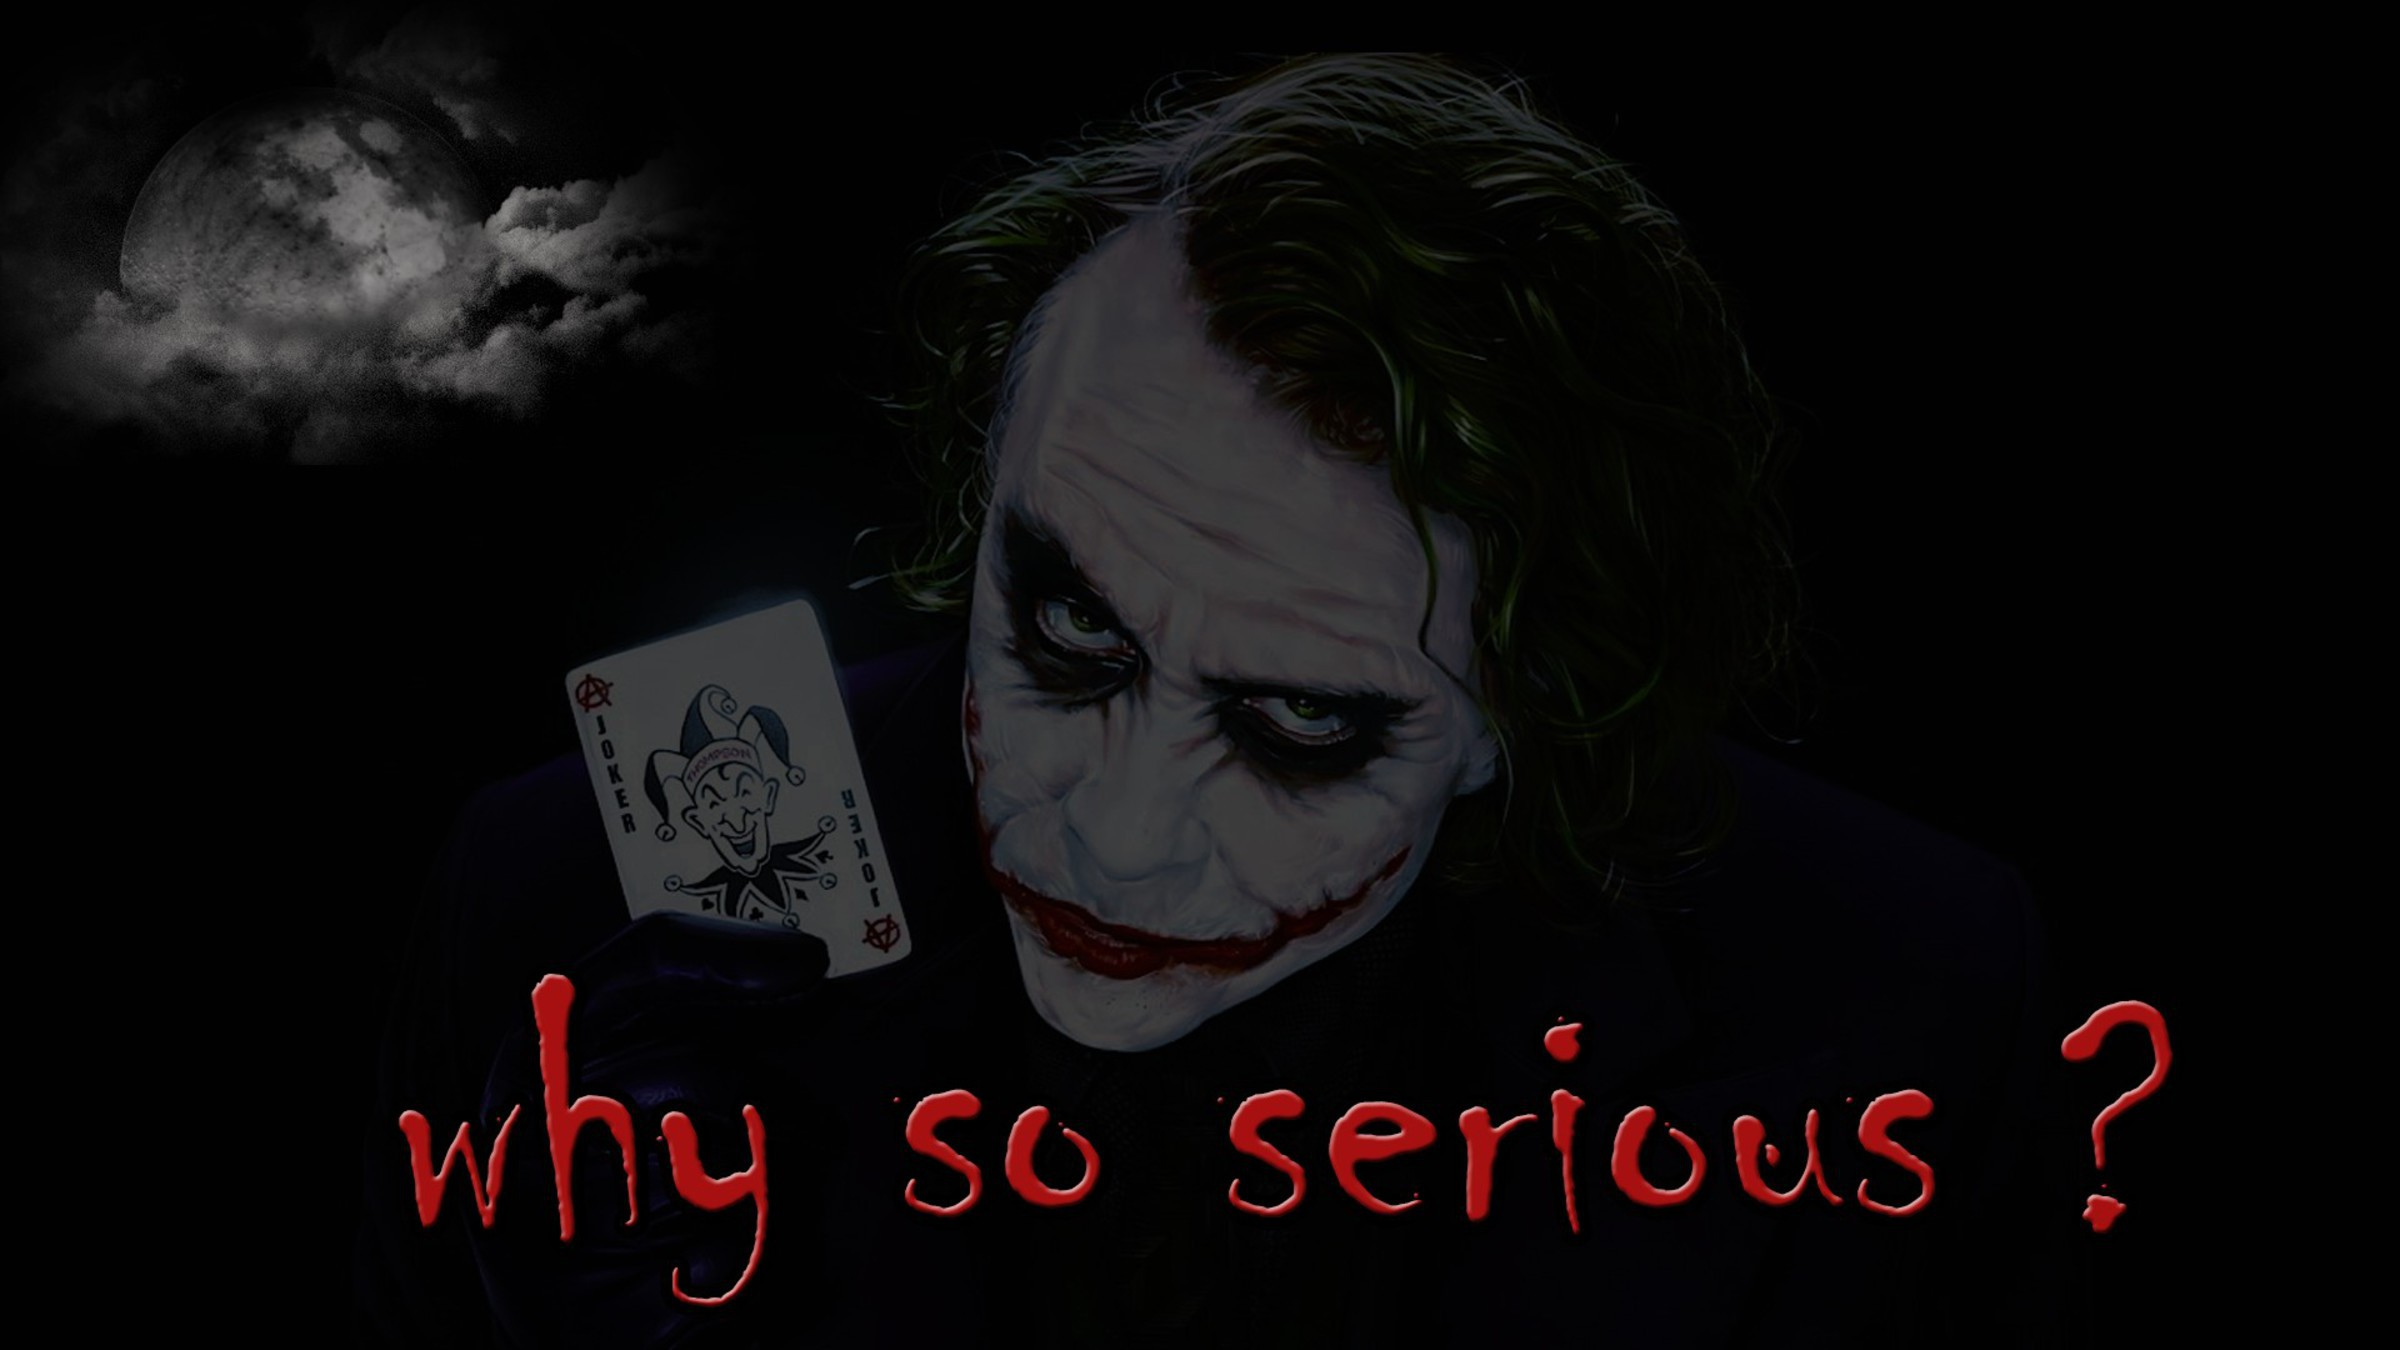 Why So Serious Wallpapers Images Photos Pictures Backgrounds